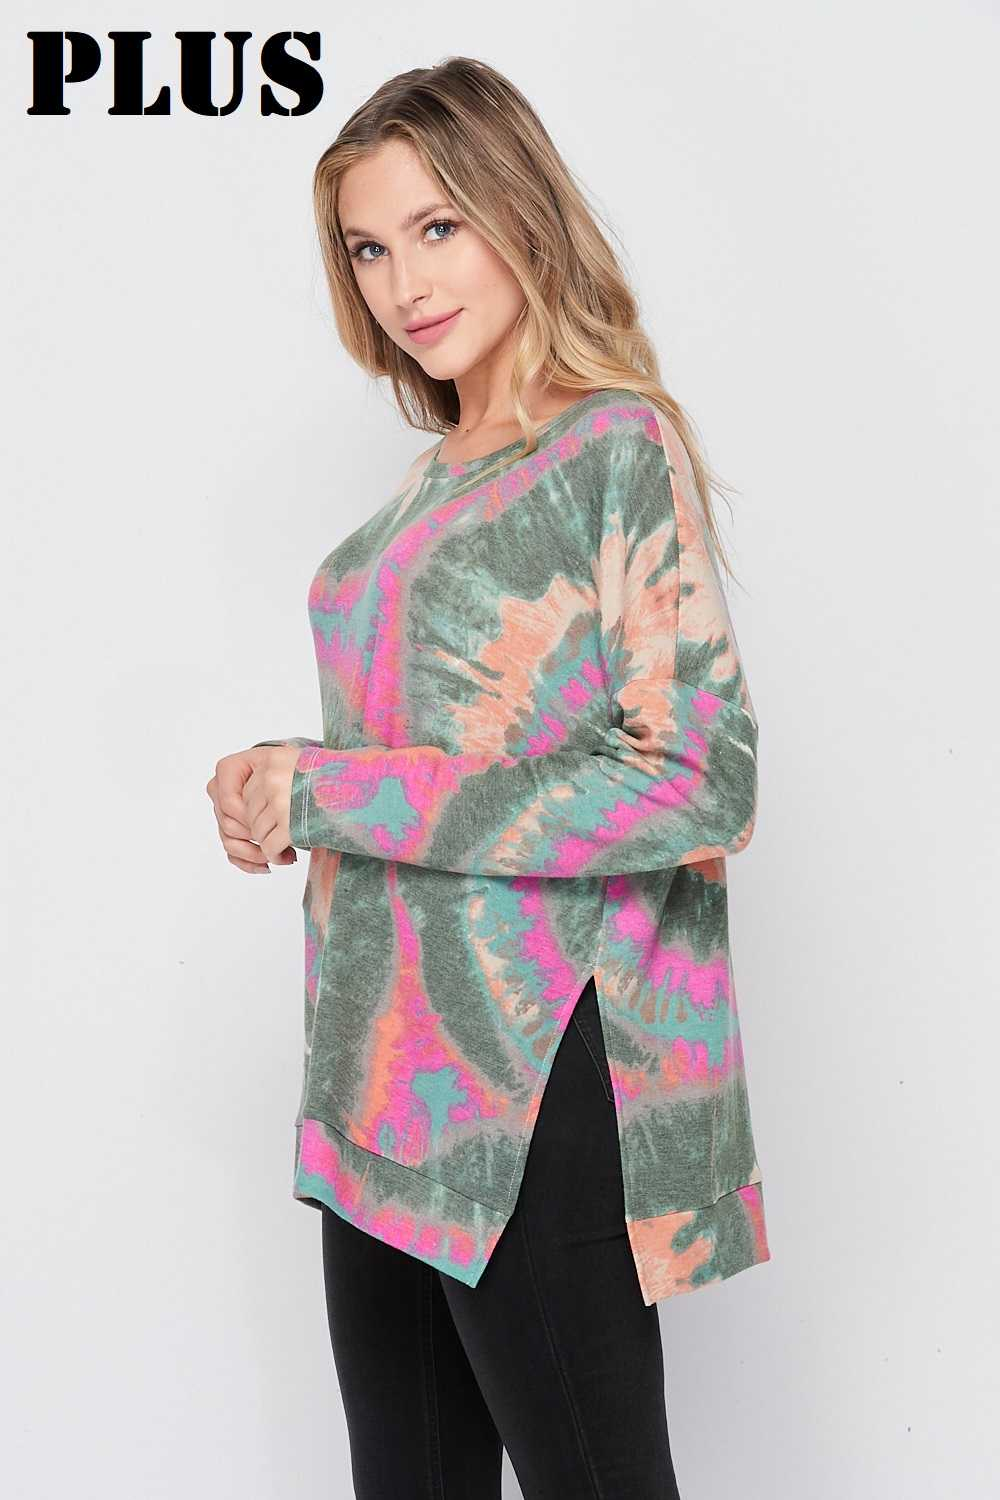 PLUS Jade Tie Dye Side Slit Thin Knit Top